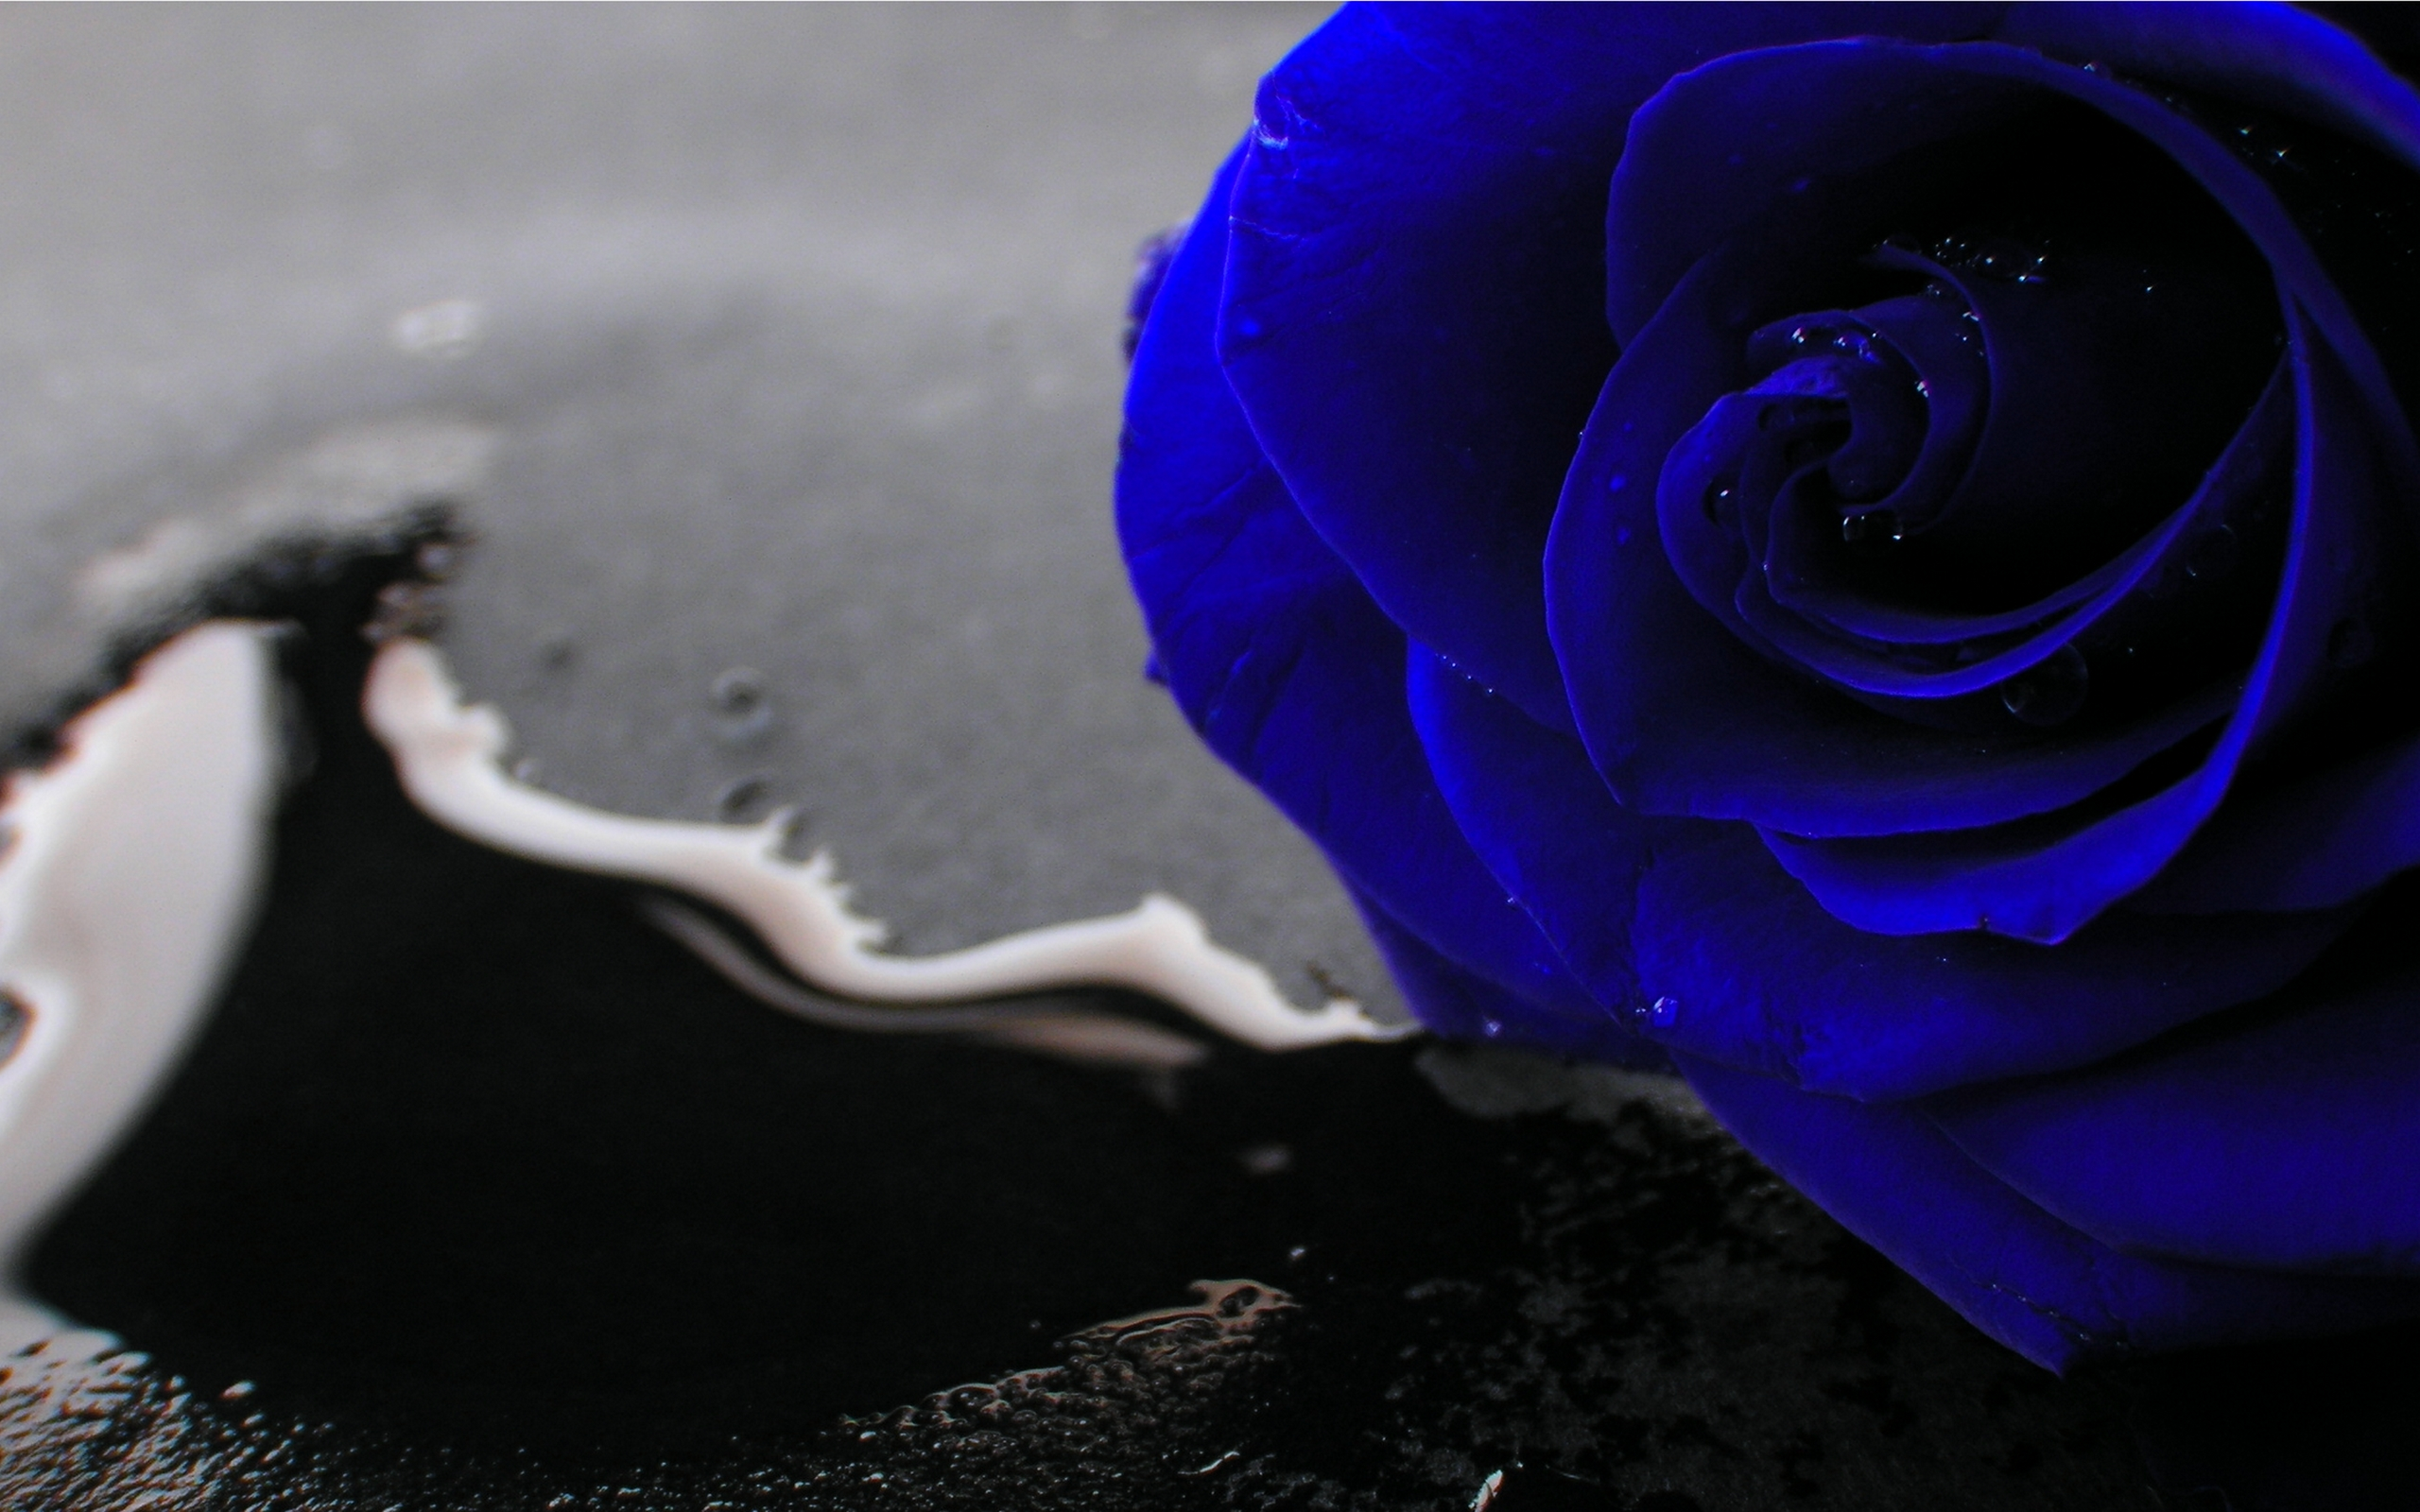 blue rose wallpaper 69 free hd wallpaper - hdflowerwallpaper